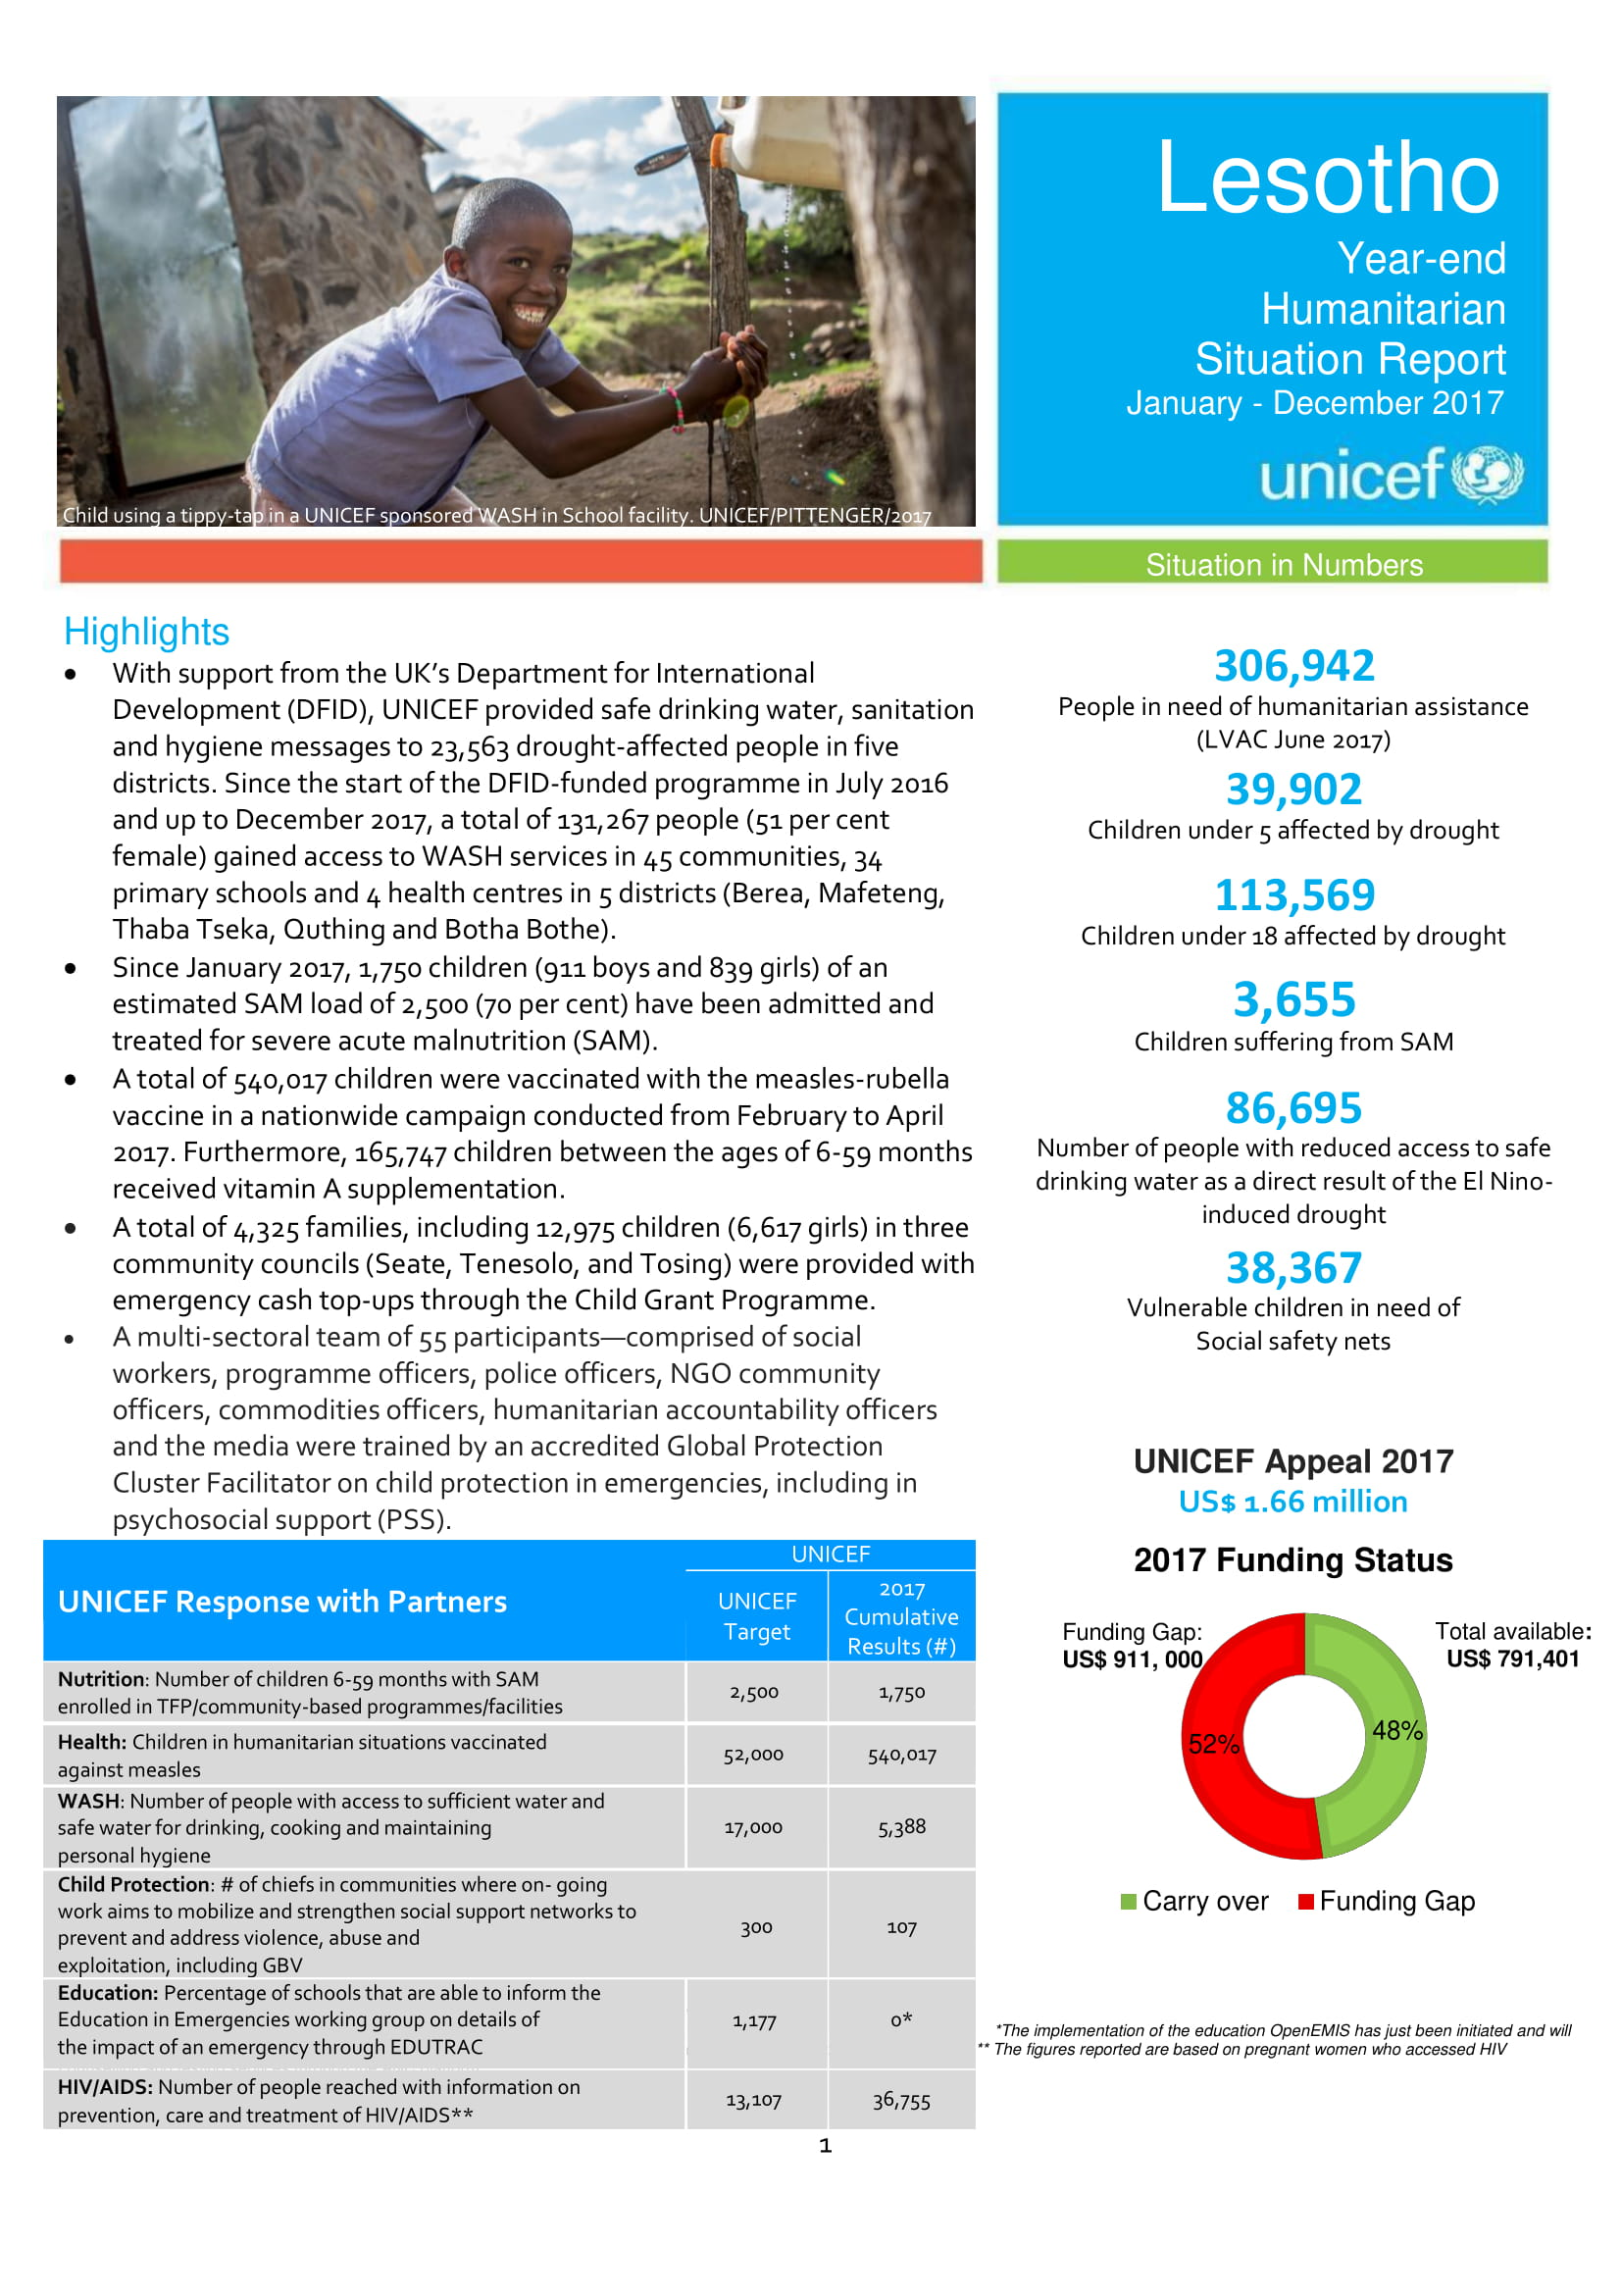 year end humanitarian situation report example